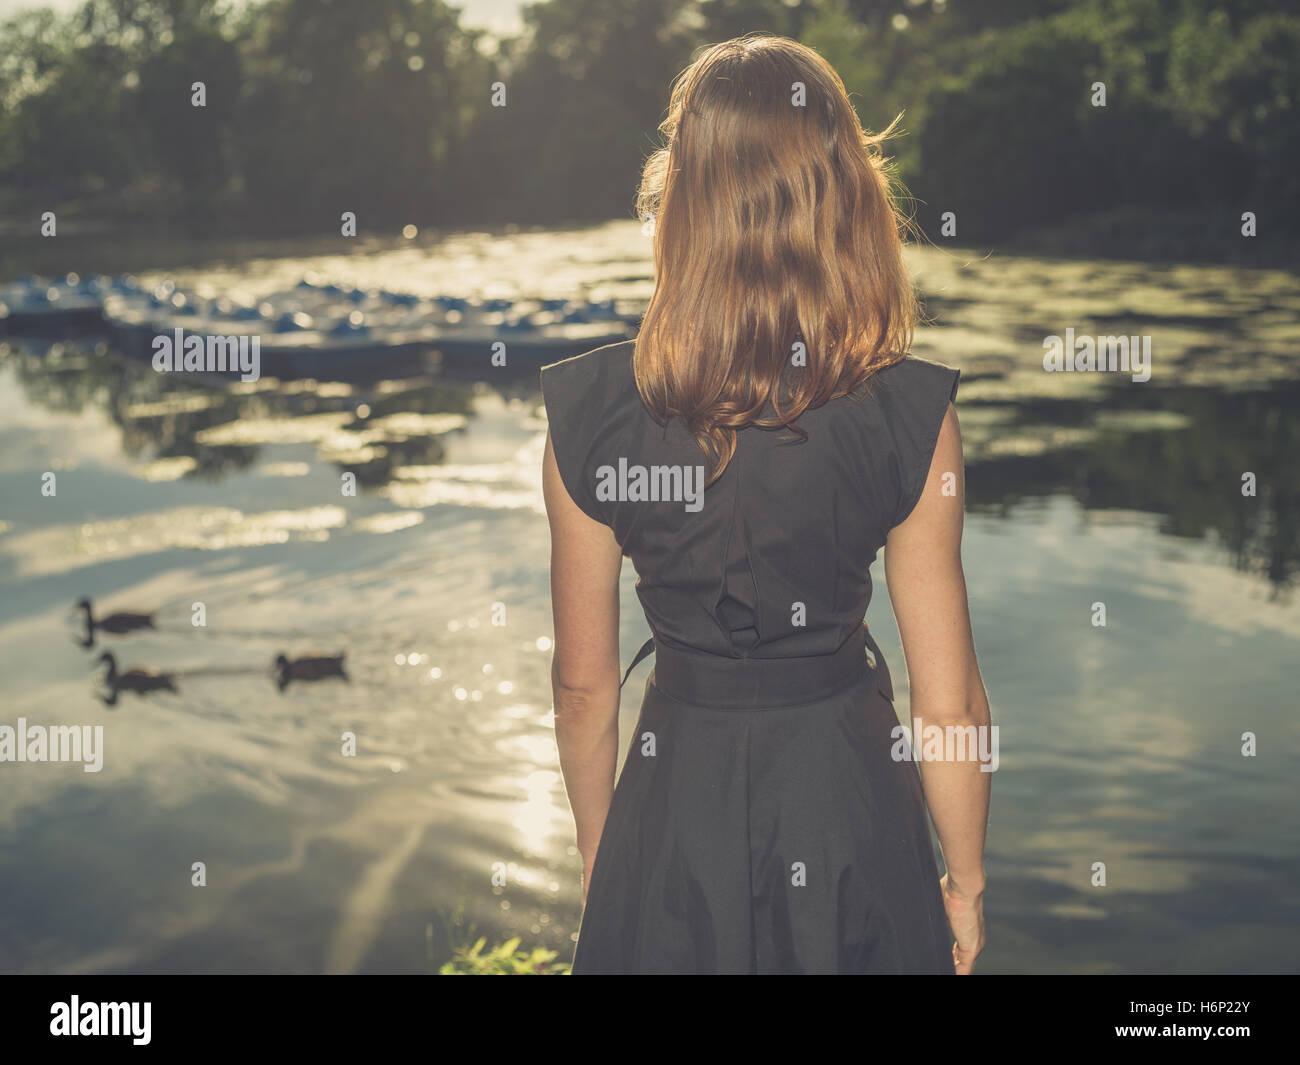 Vintage filtered shot of an elegant young woman standing by a lake in a park at sunset - Stock Image